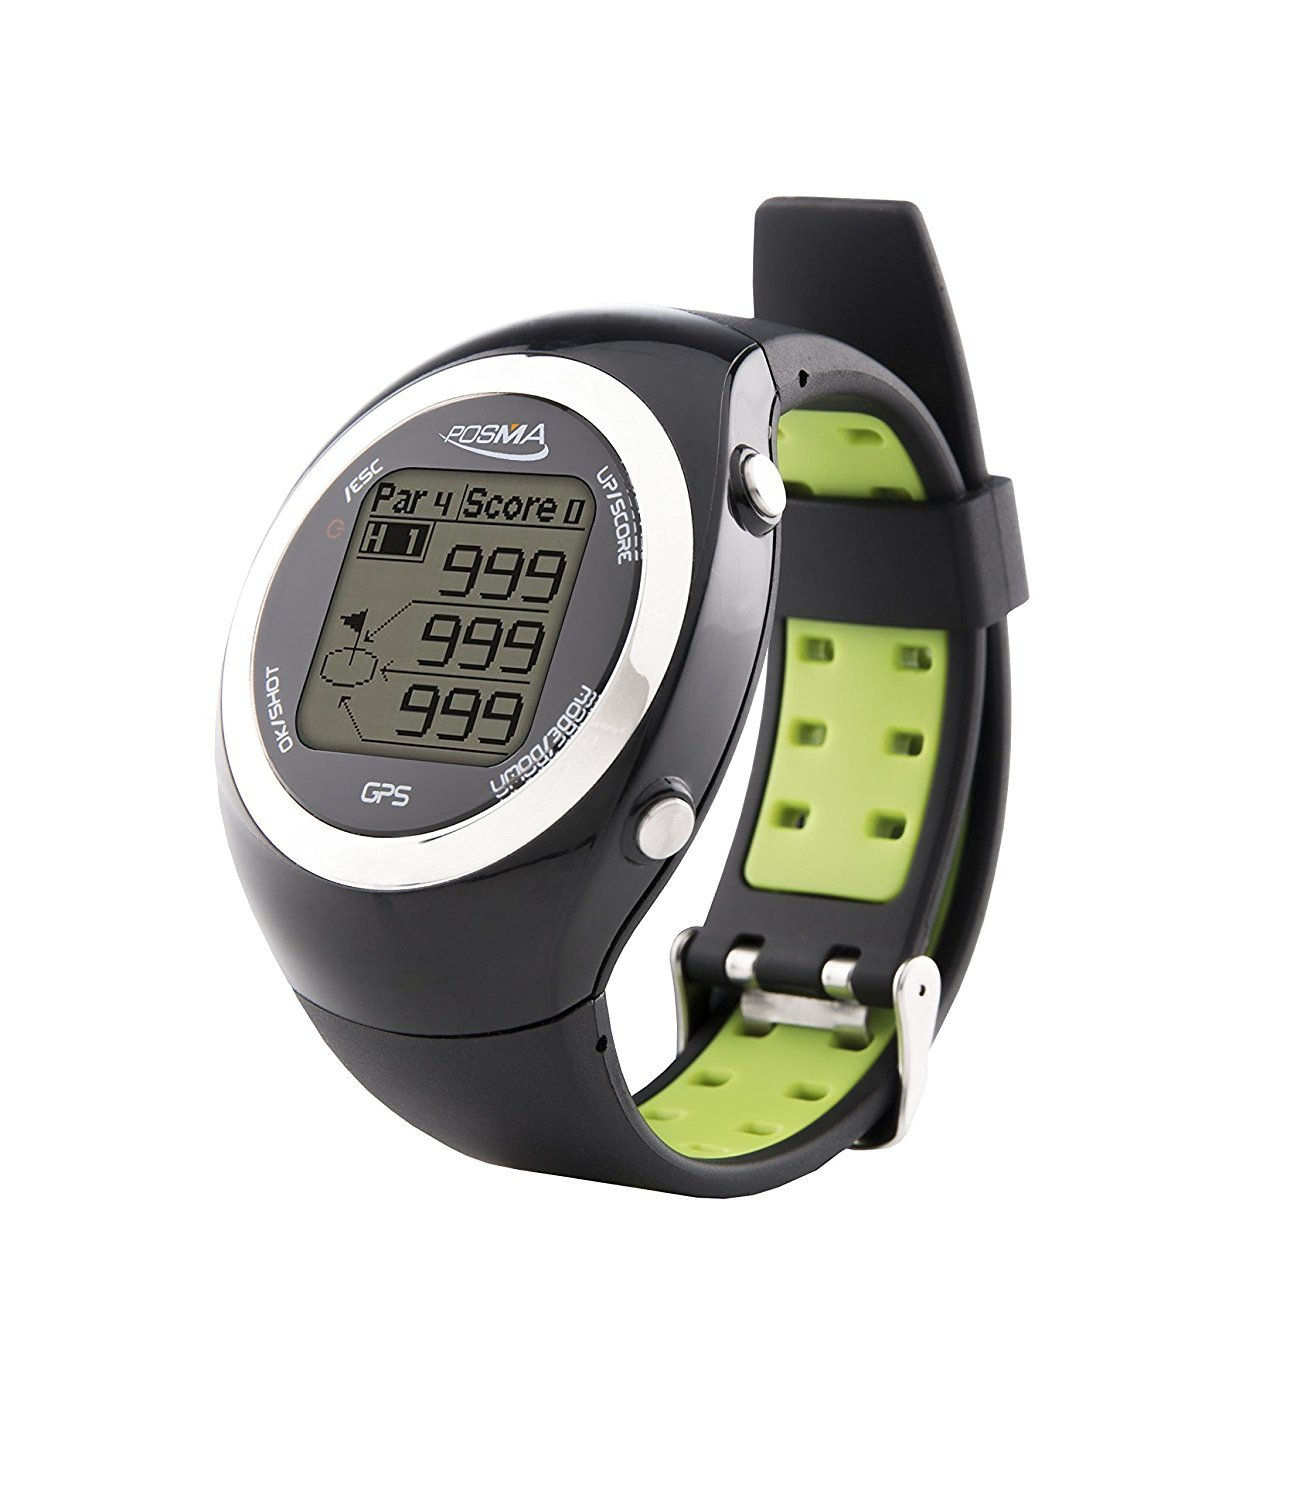 POSMA GT2 Golf Watch with GPS, Golf Rangefinder Activity Tracker Watches, Preloaded Golf Courses, No Download - Green by POSMA